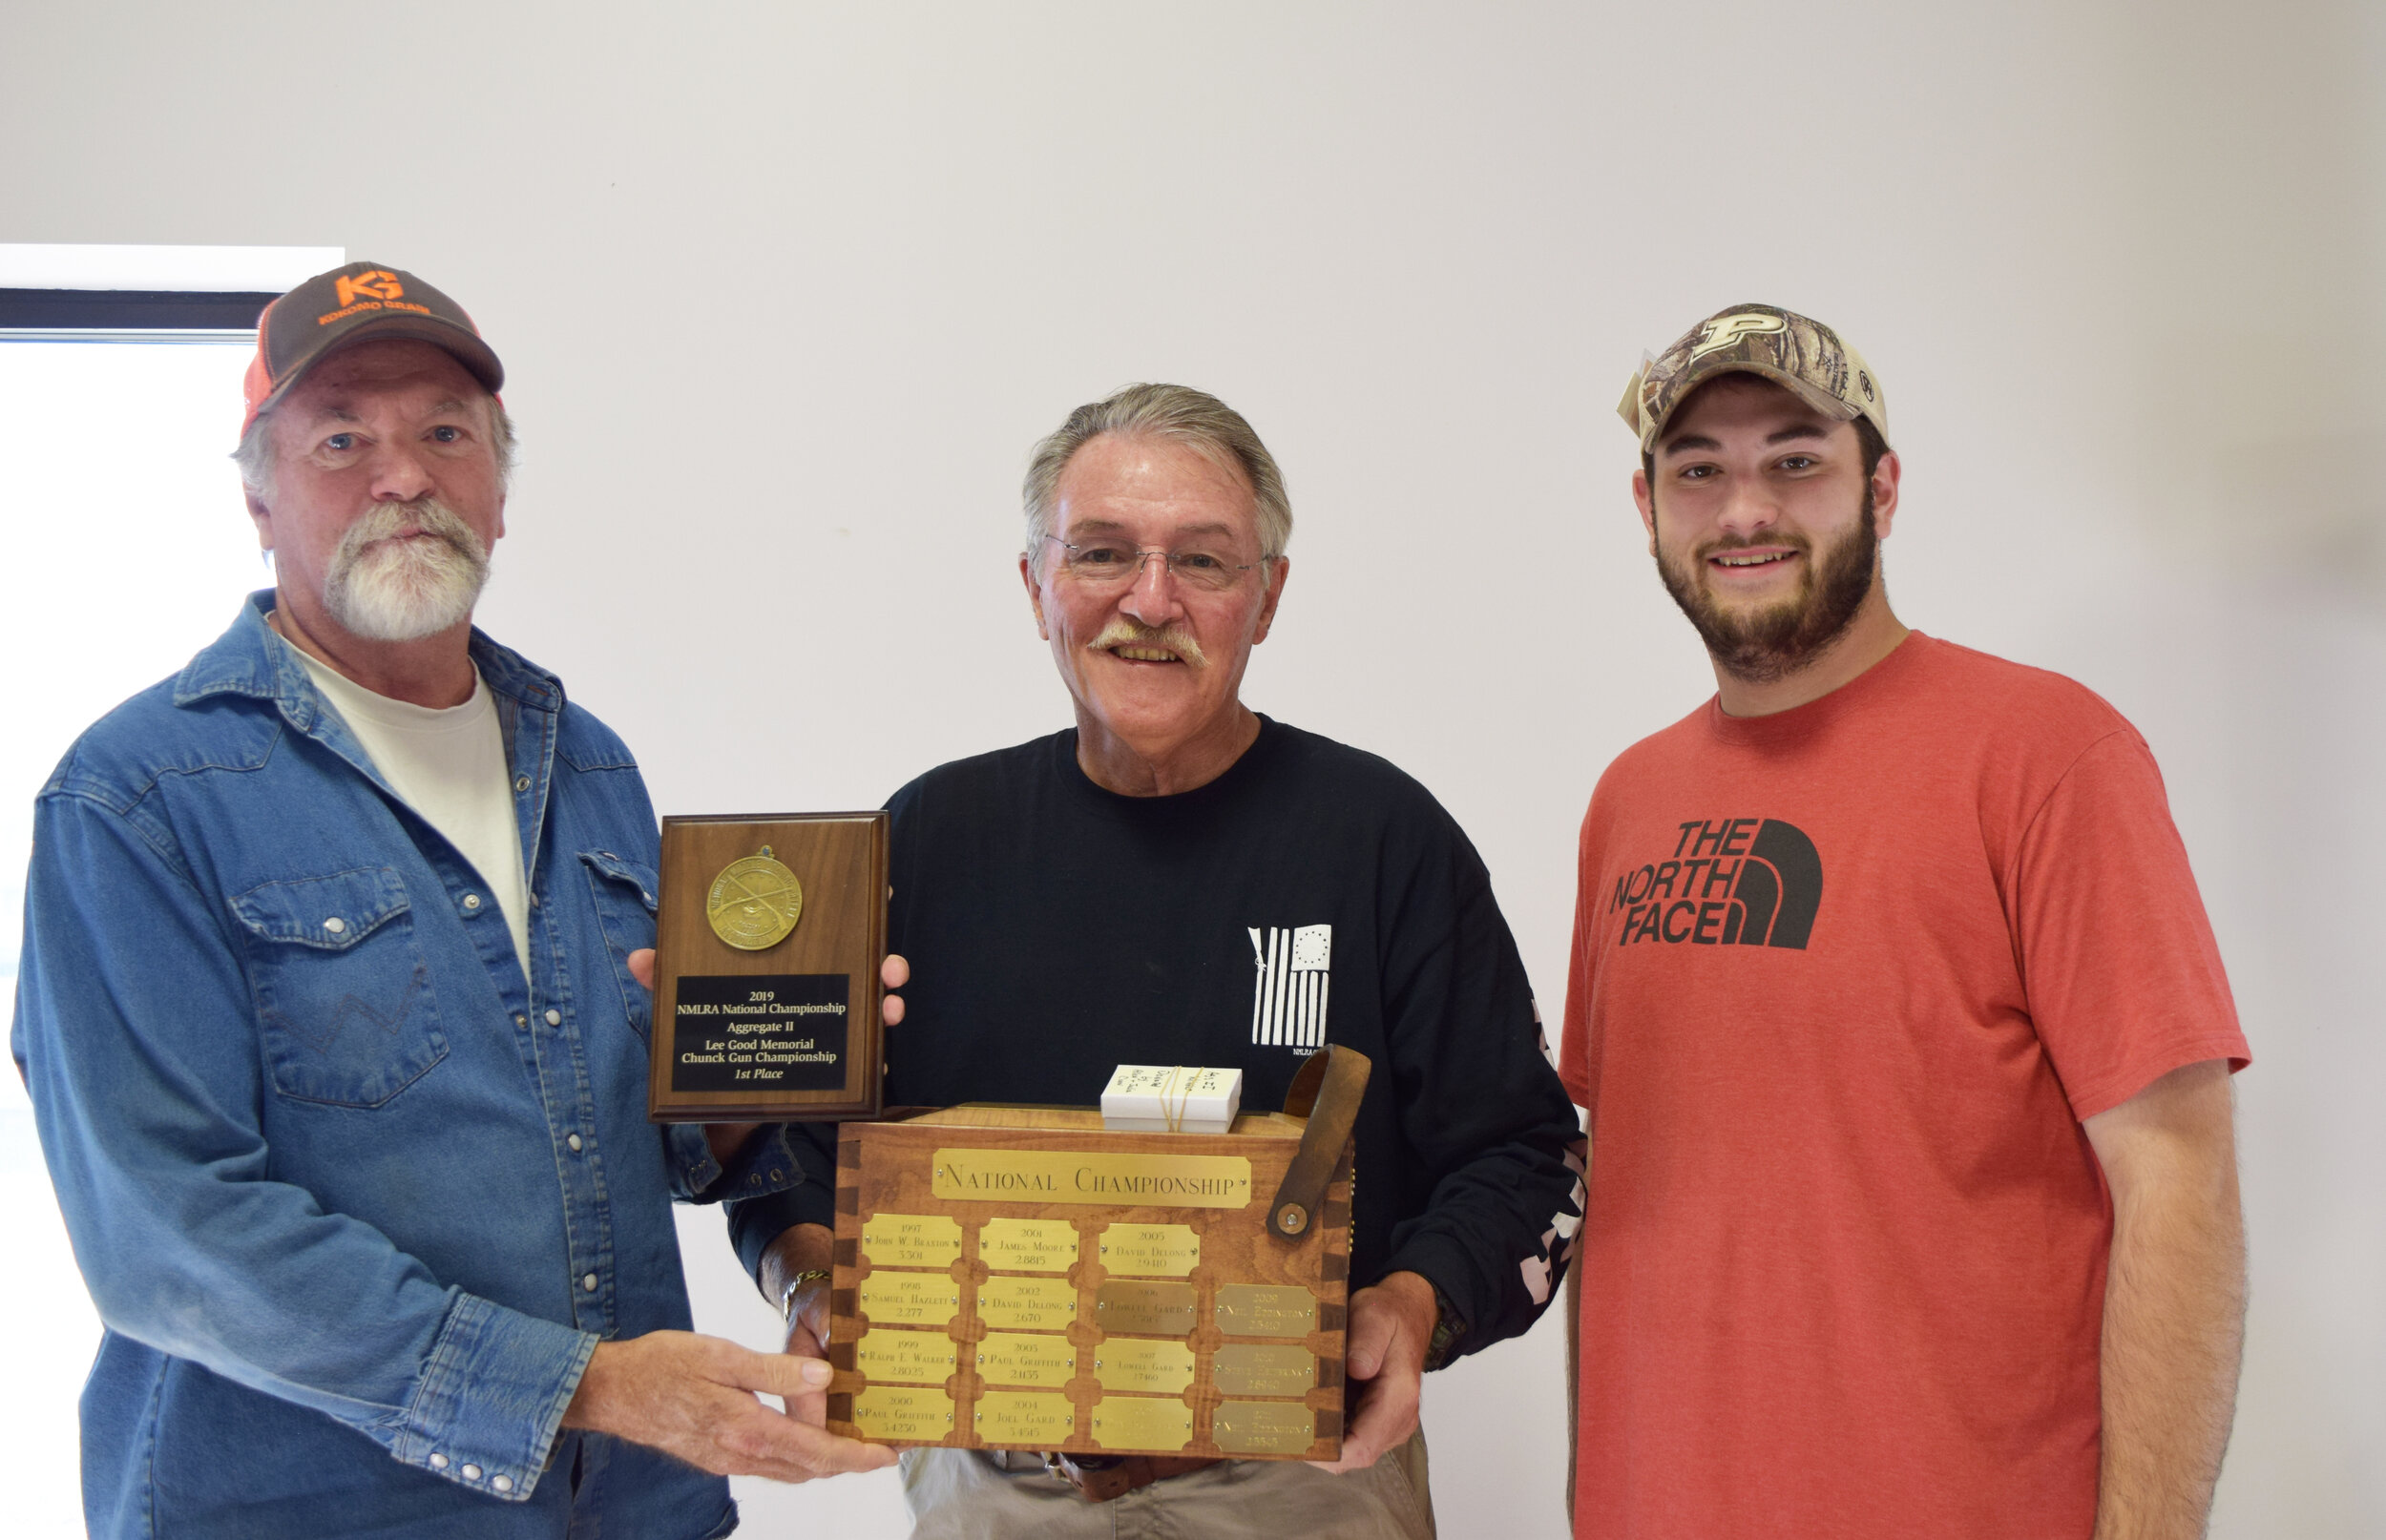 William Wonning - Aggregate II - Lee Good Memorial Chunk Gun Championship Winner with NMLRA President Brent Steele and Director Colton Fleetwood